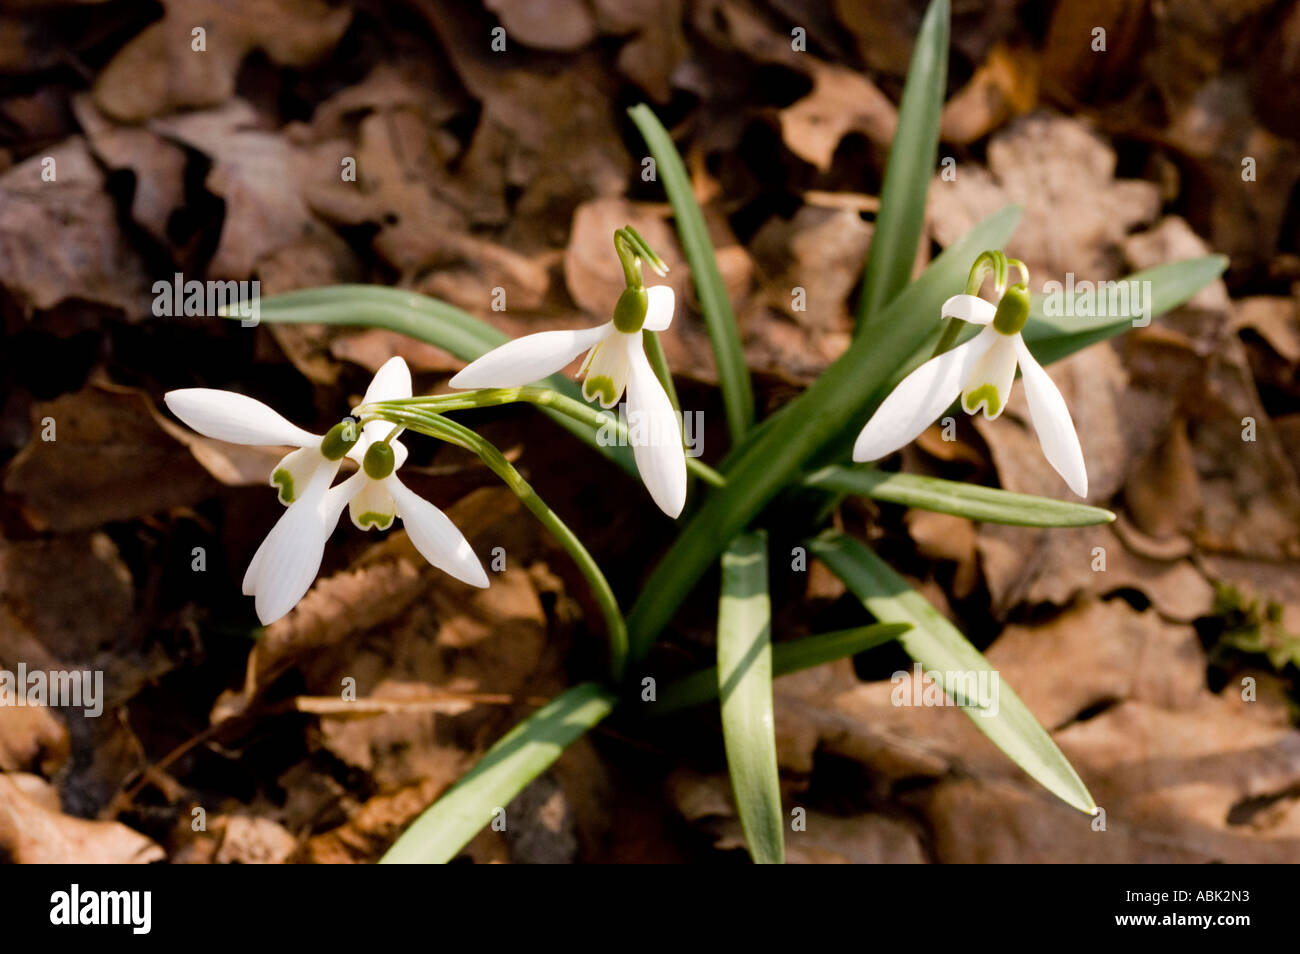 White Flowers Of Early Spring Common Snowdrop Milk Flower Latin Name